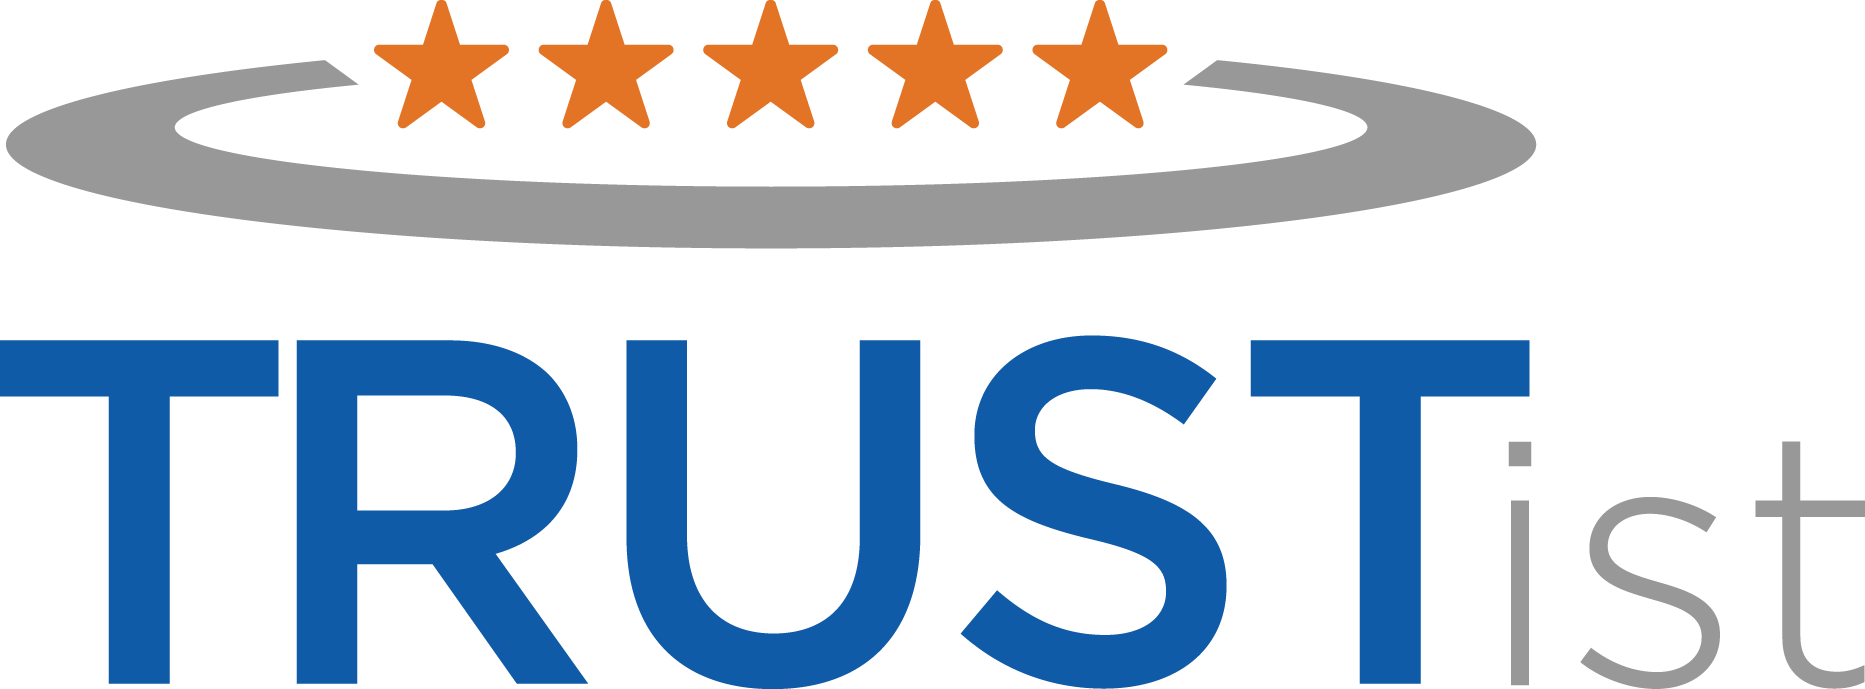 5-star-ciustomer-reviews-building-services-chiswick